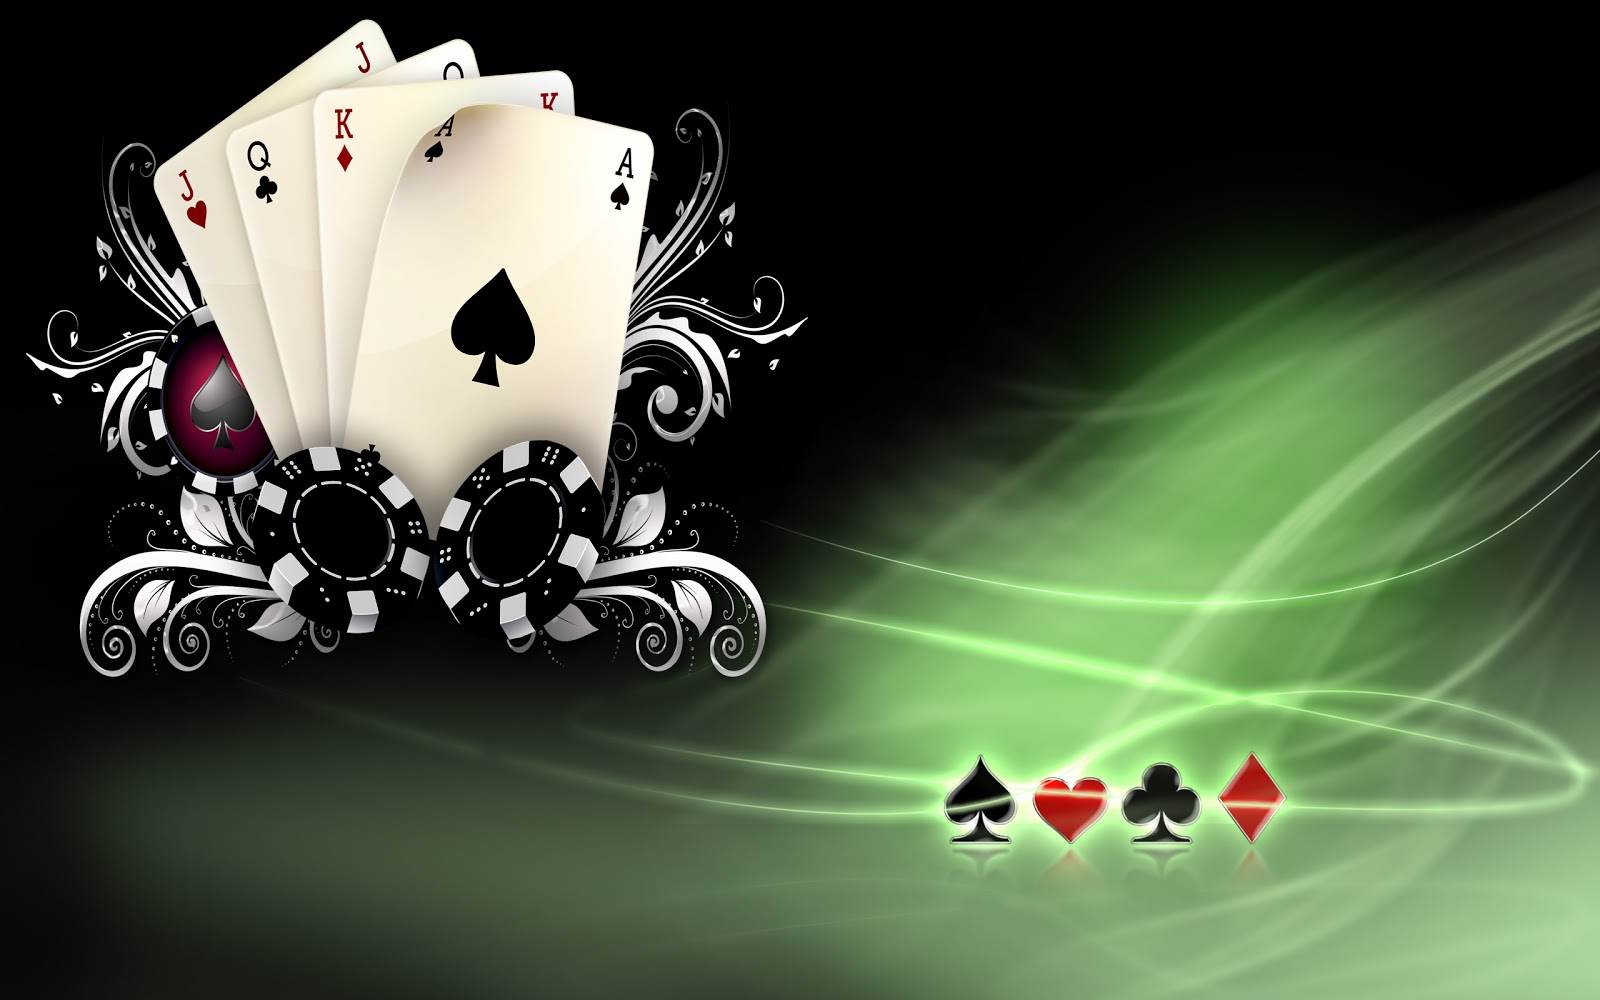 What is the probability that a five-card poker hand contains two pairs